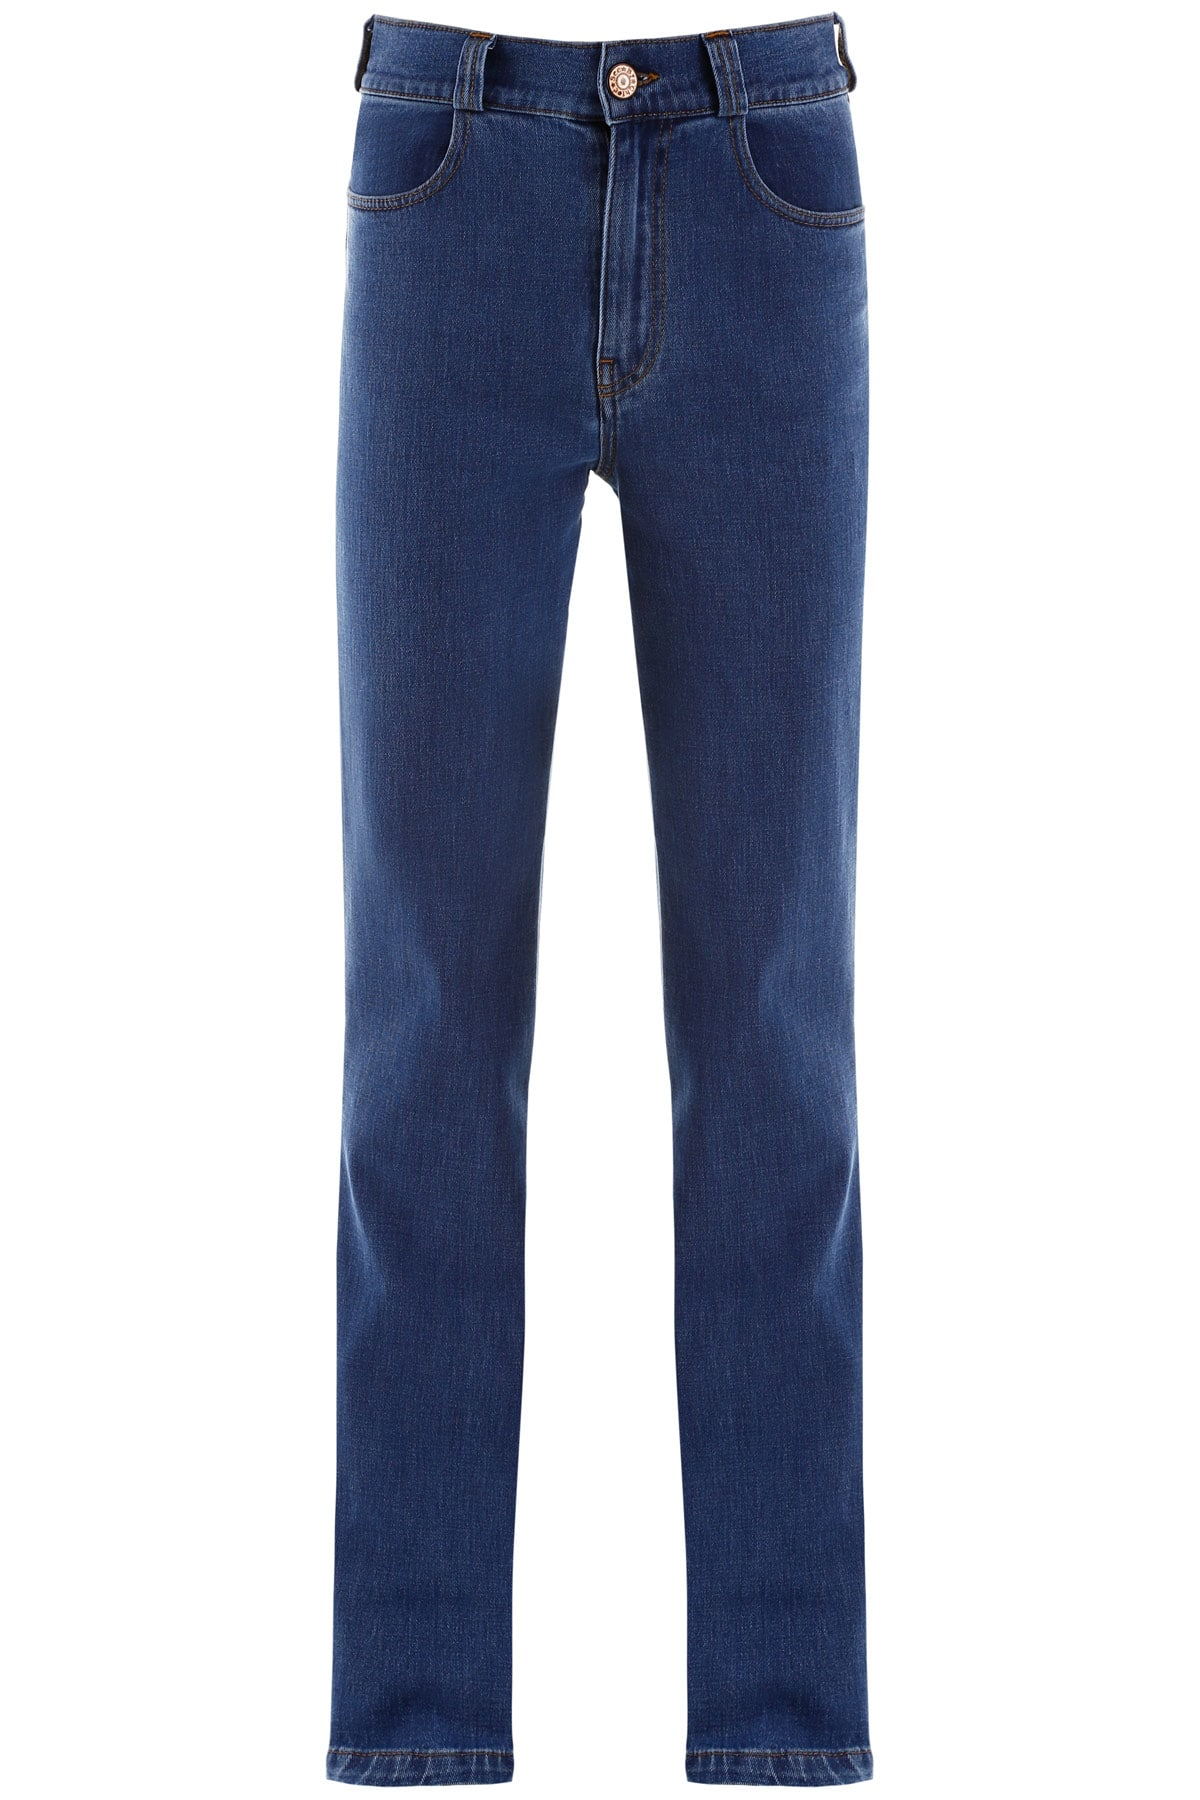 SEE BY CHLOE HIGH WAISTED JEANS 27 Blue Cotton, Denim